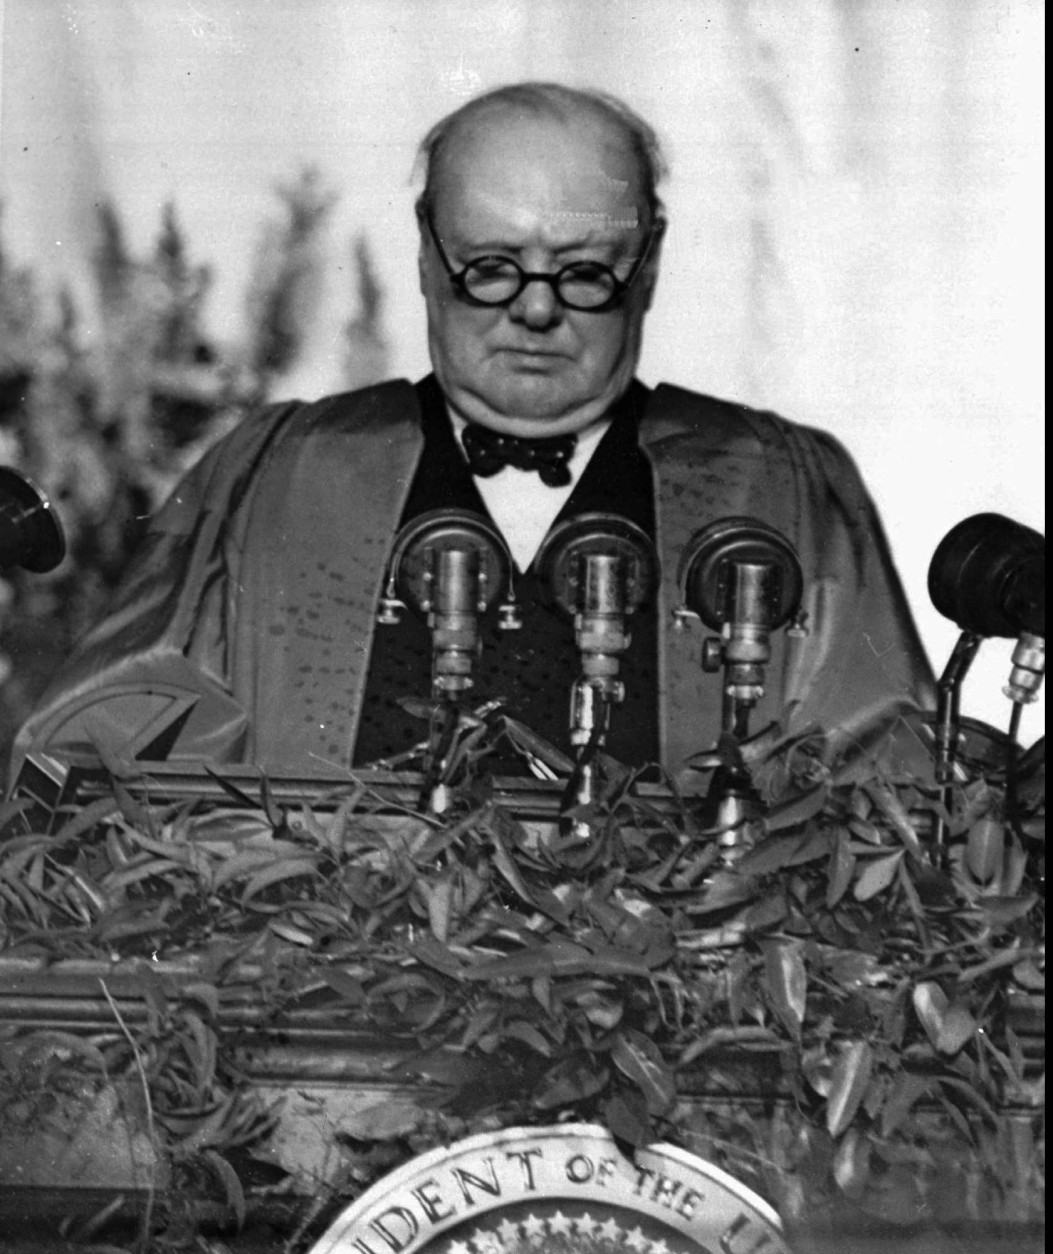 """On June 18, 1940, with the World War II Battle of Britain looming, British Prime Minister Winston Churchill urged his countrymen to conduct themselves so that future generations would say, """"this was their finest hour."""" (AP Photo)"""